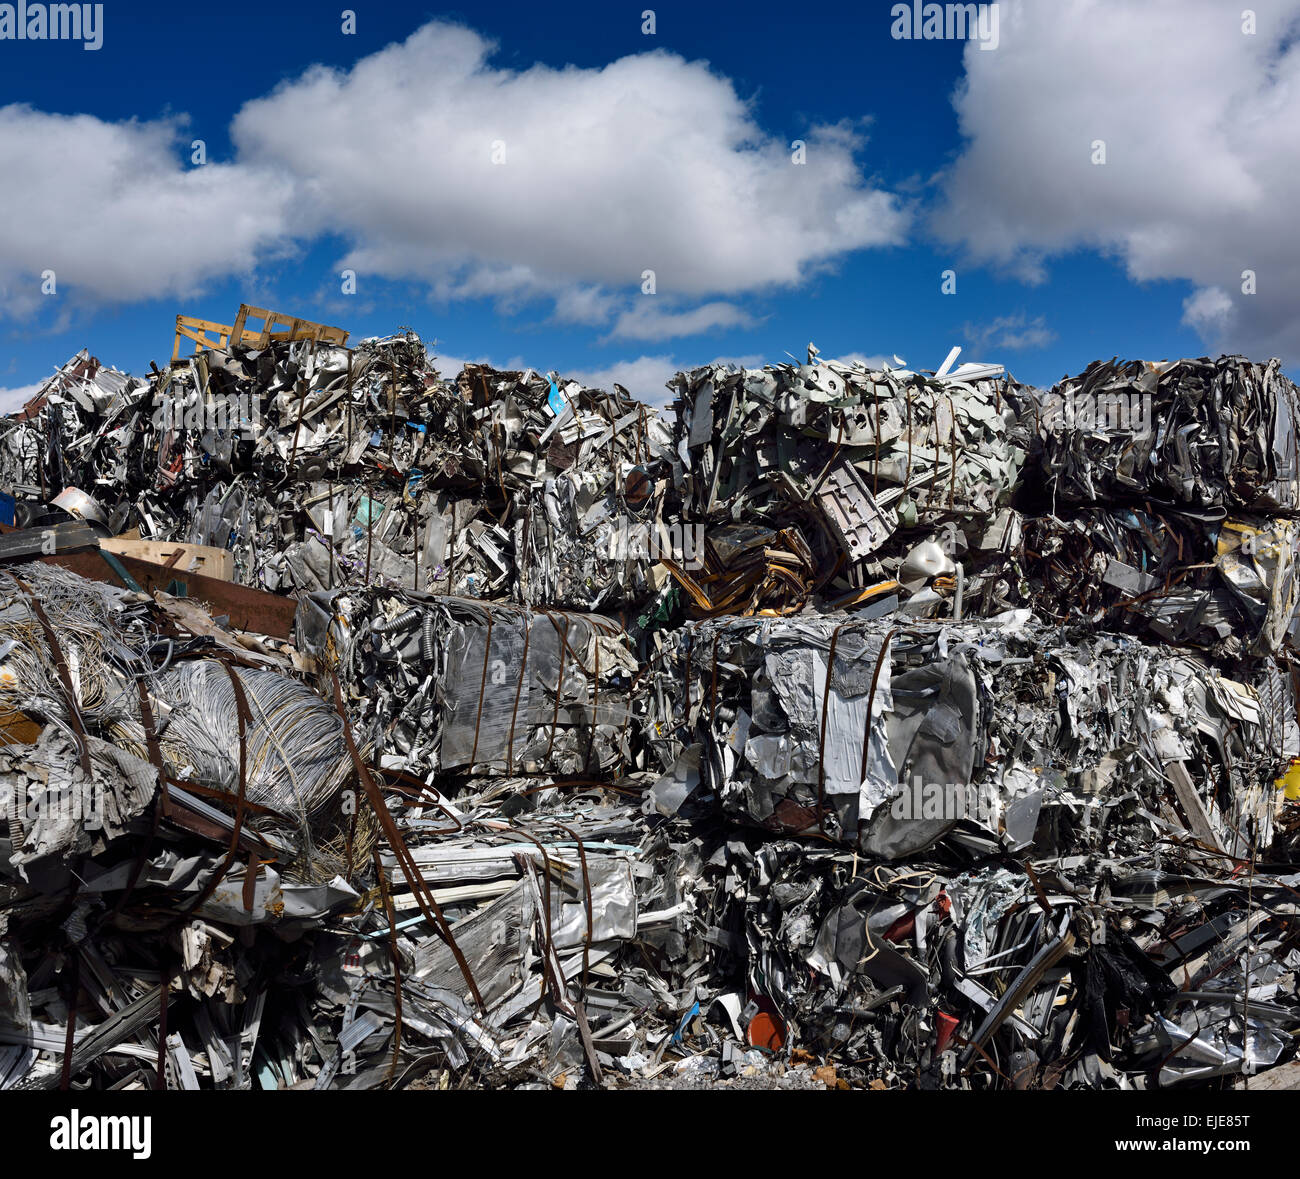 Mountain of crushed recycled scrap metal cubes with blue sky and clouds Toronto - Stock Image